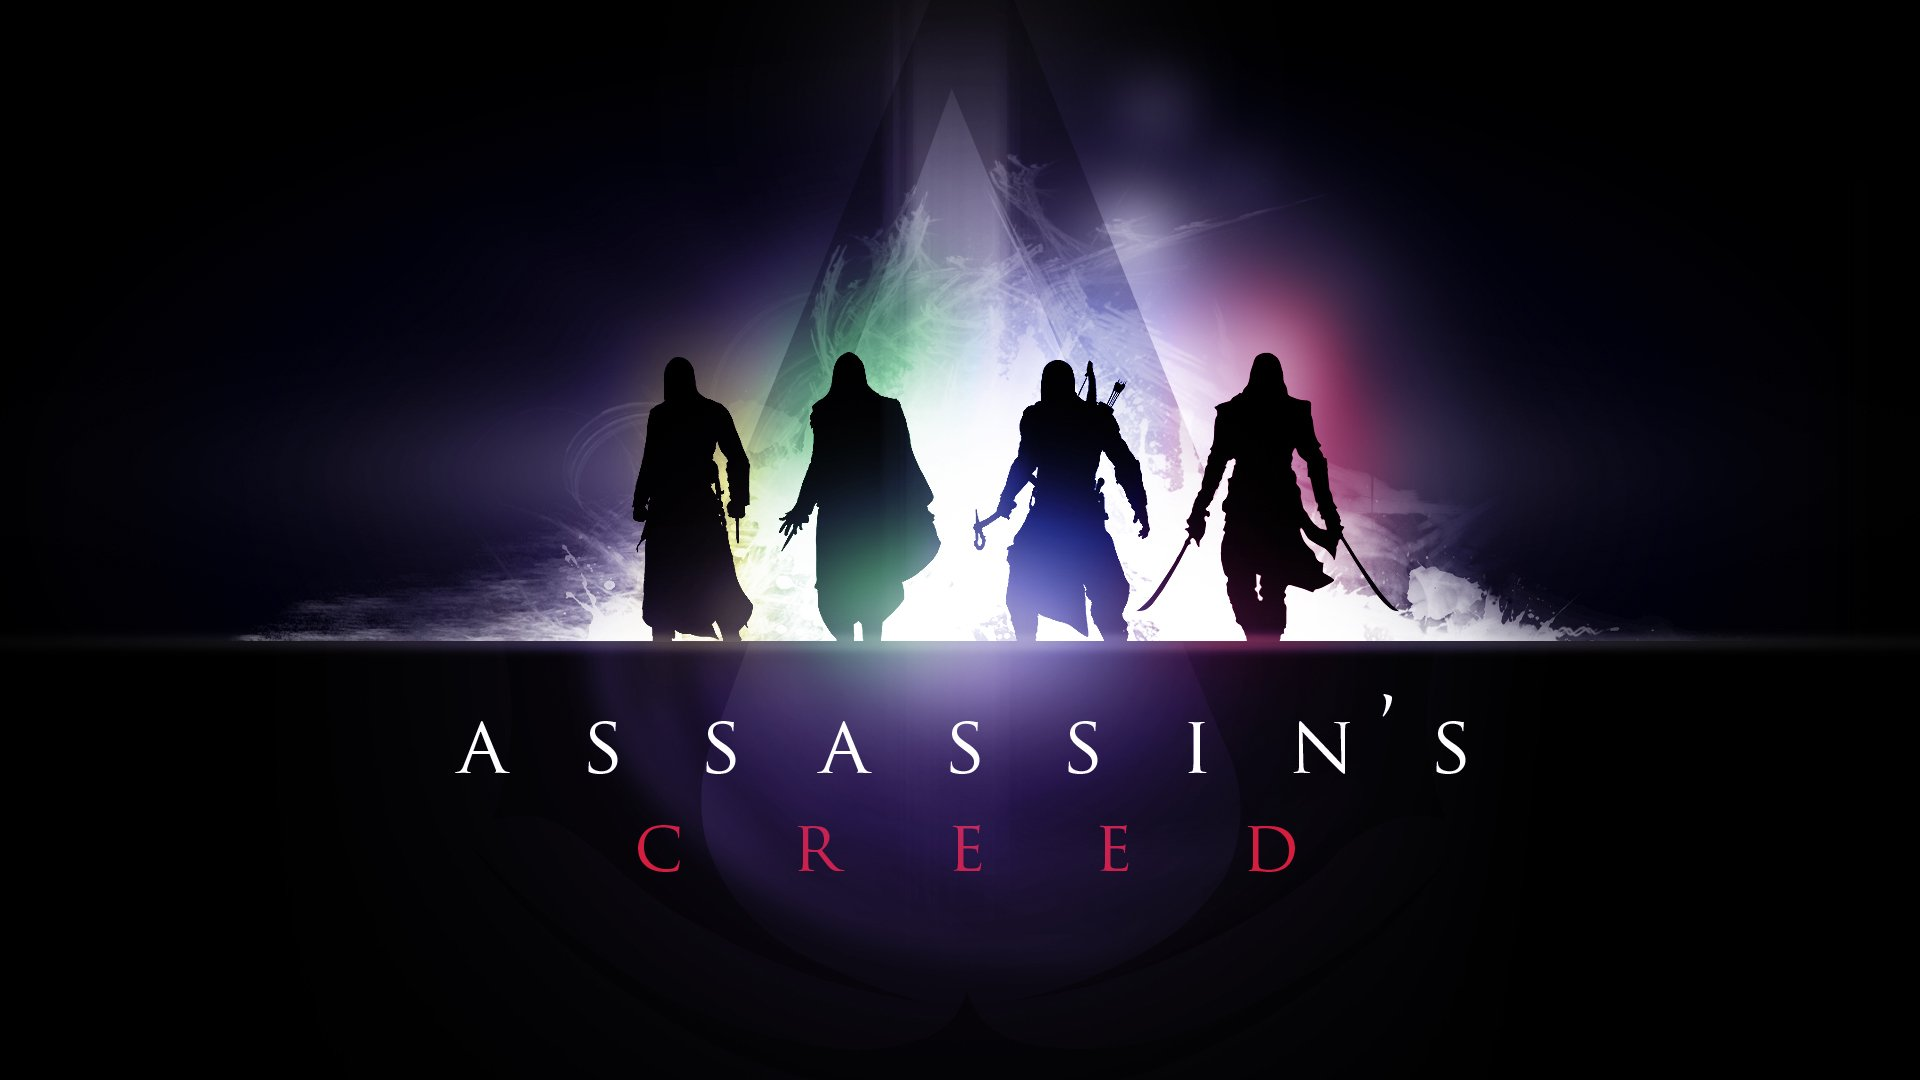 Free Download Unity Creed Assassins Revolution French Poster